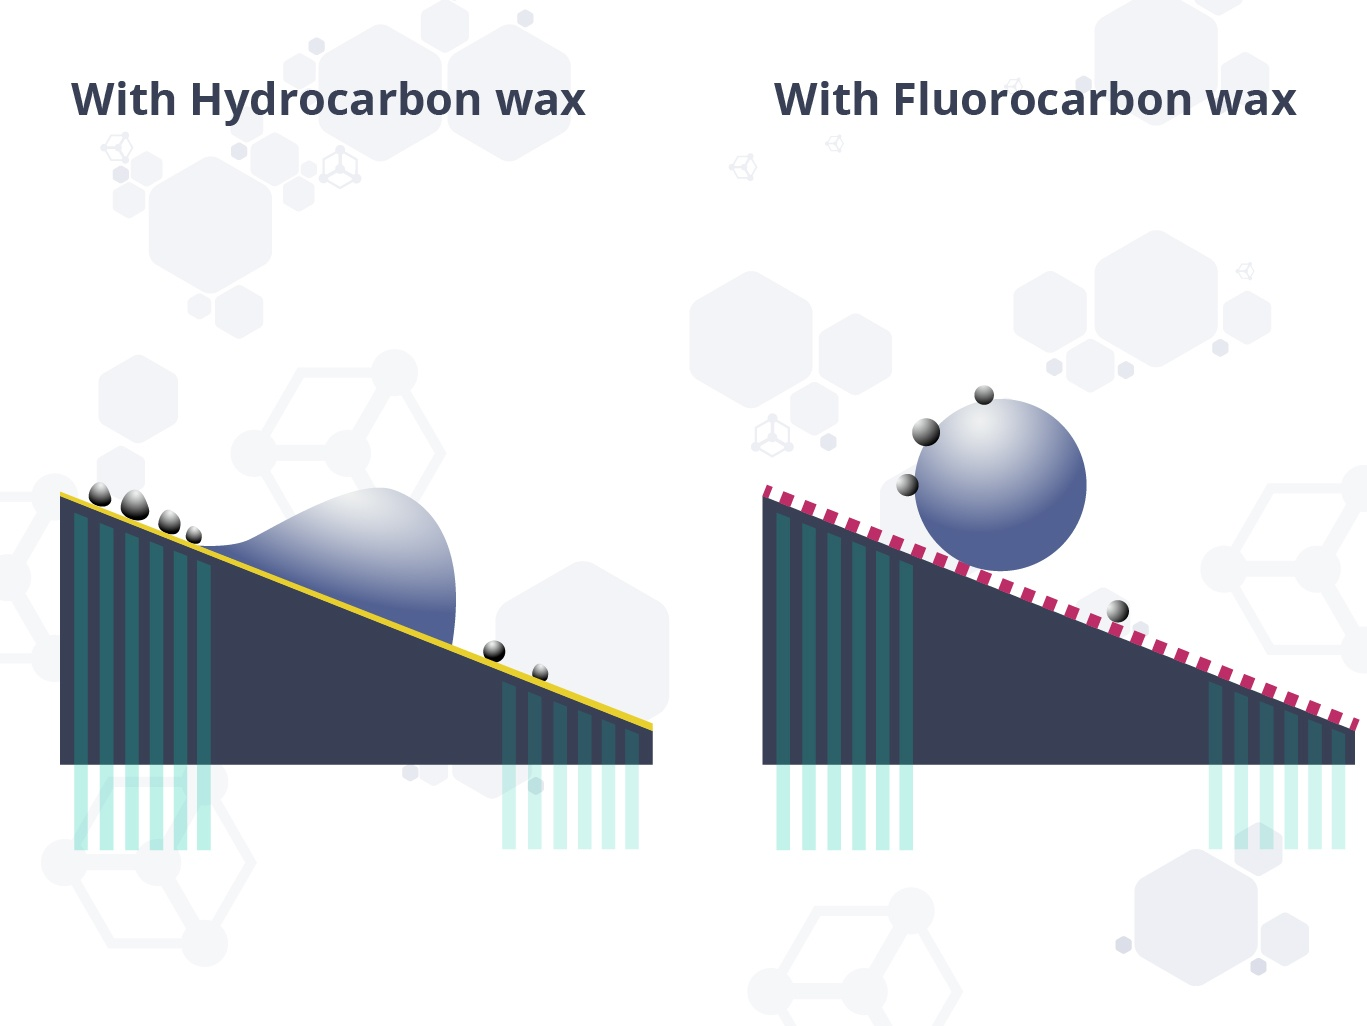 Figure 8. Fluorocarbon is a hydrophobic material to repel moisture. In low humidity or low moisture, a highly fluorinated wax may reduce speed as it essentially increases dry friction.